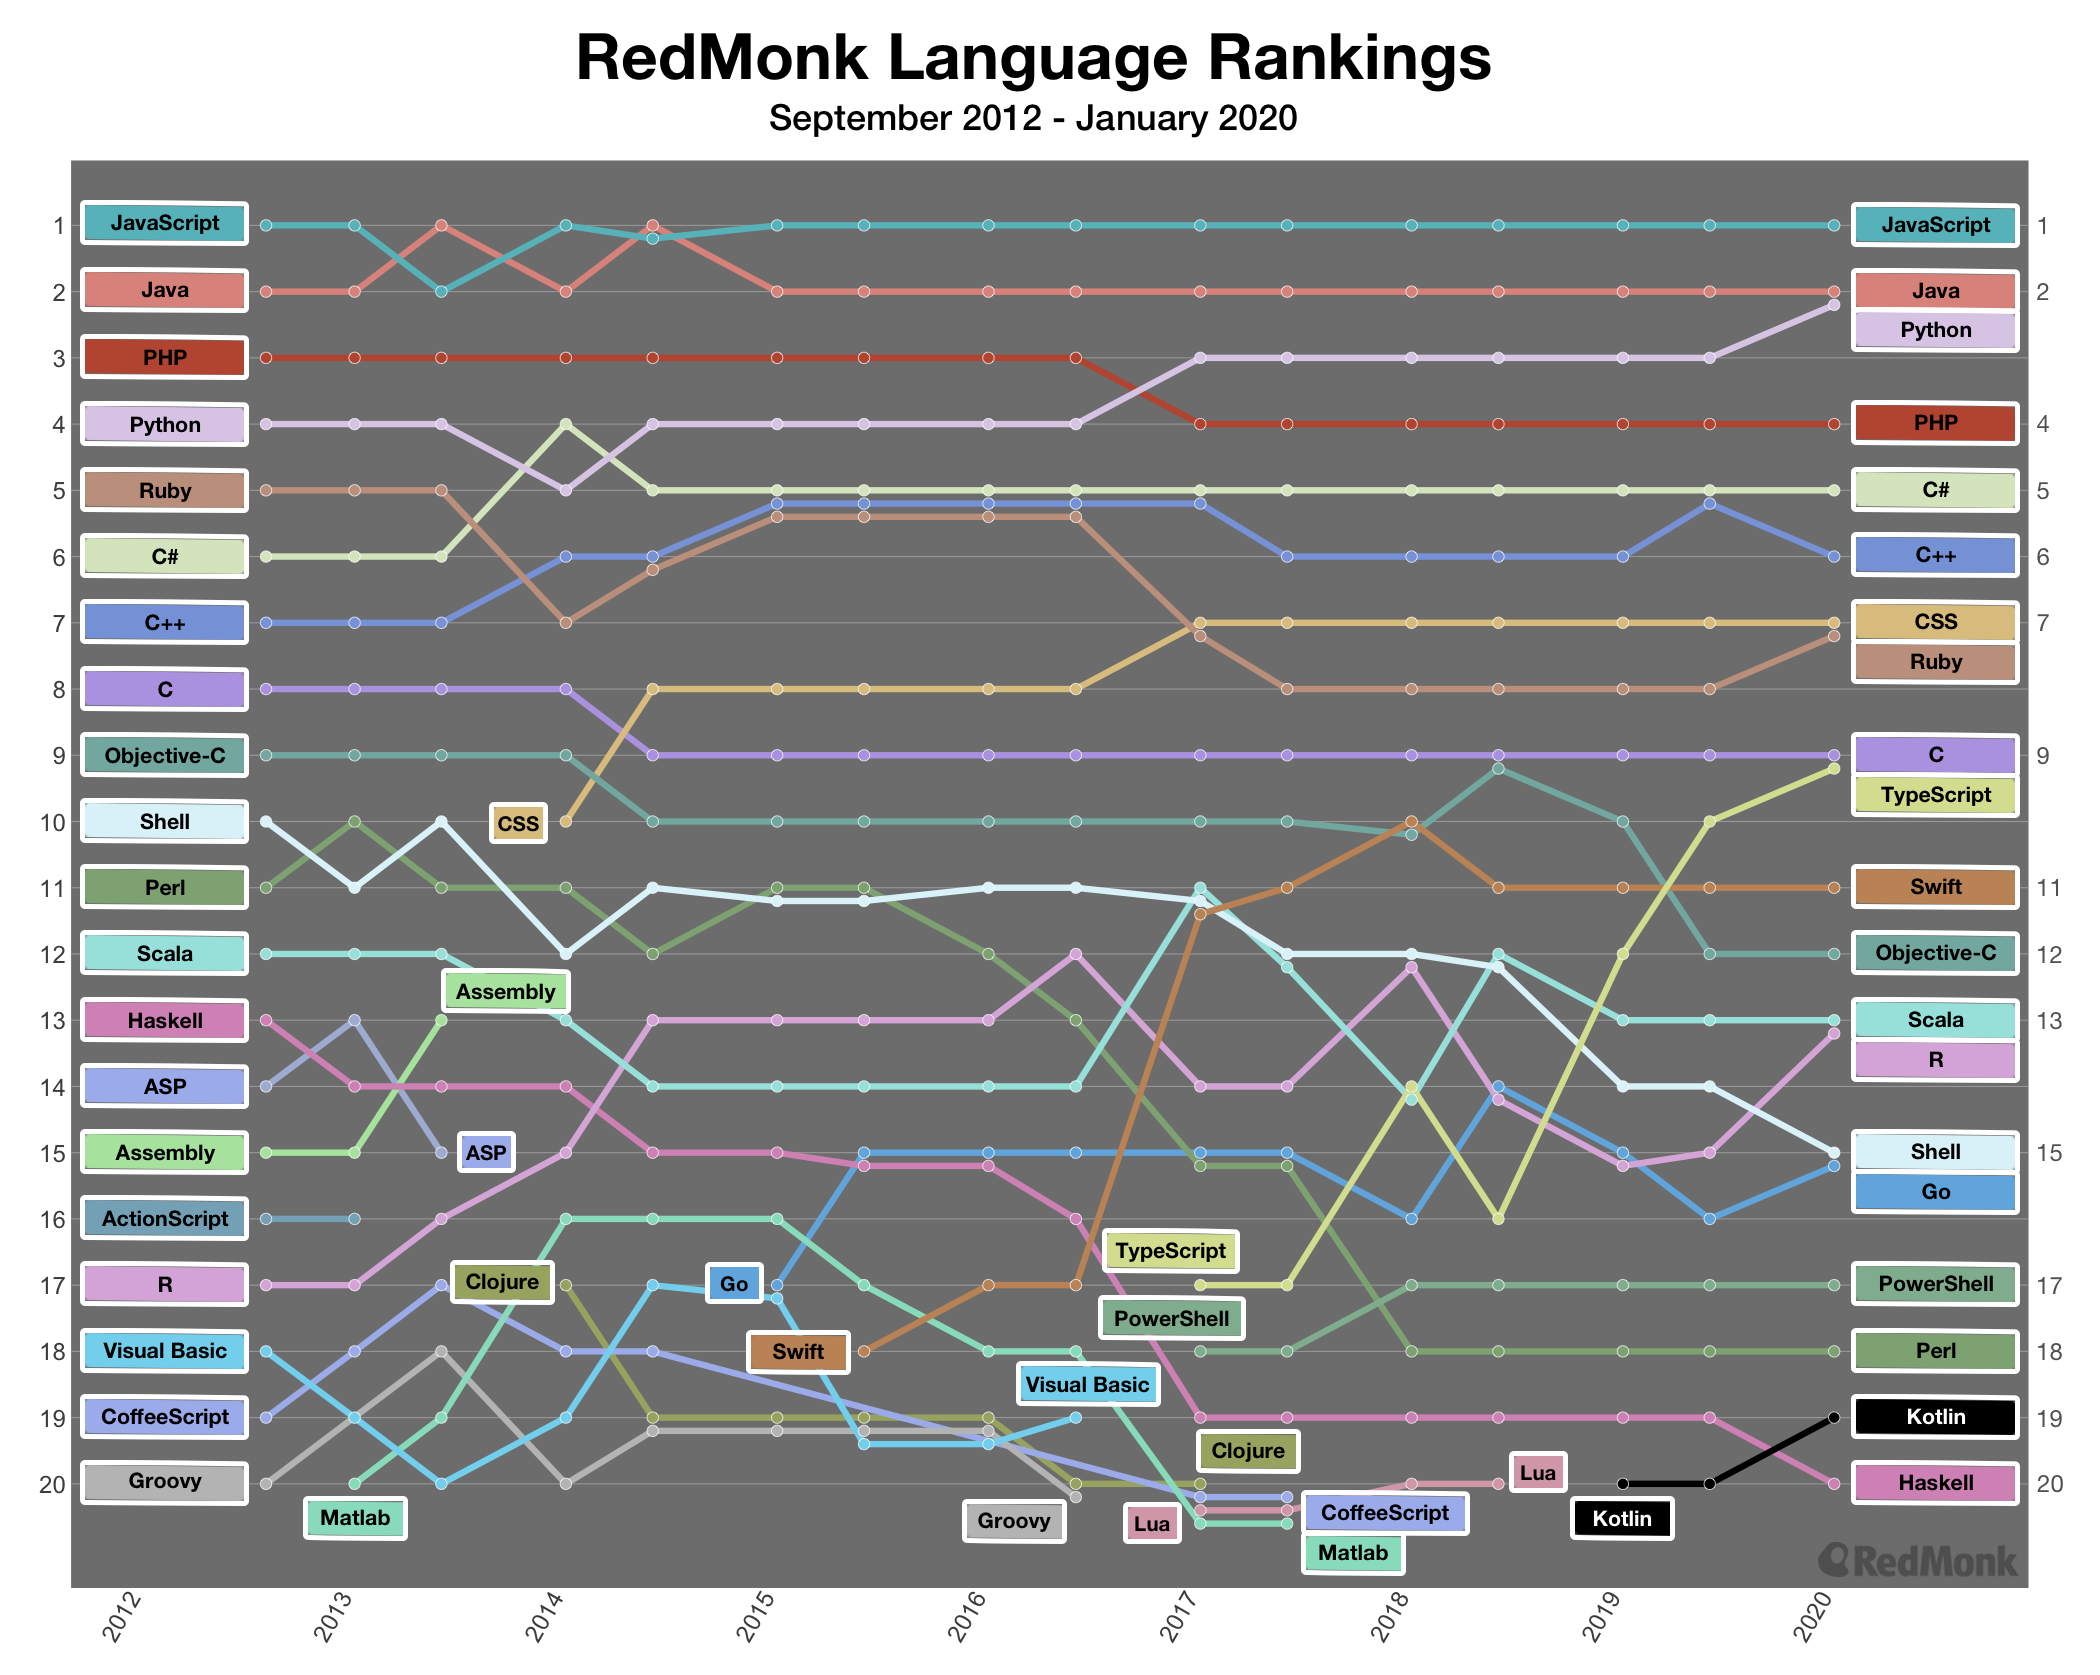 RedMonk top 20 programming languages over time, 2012 - 2020